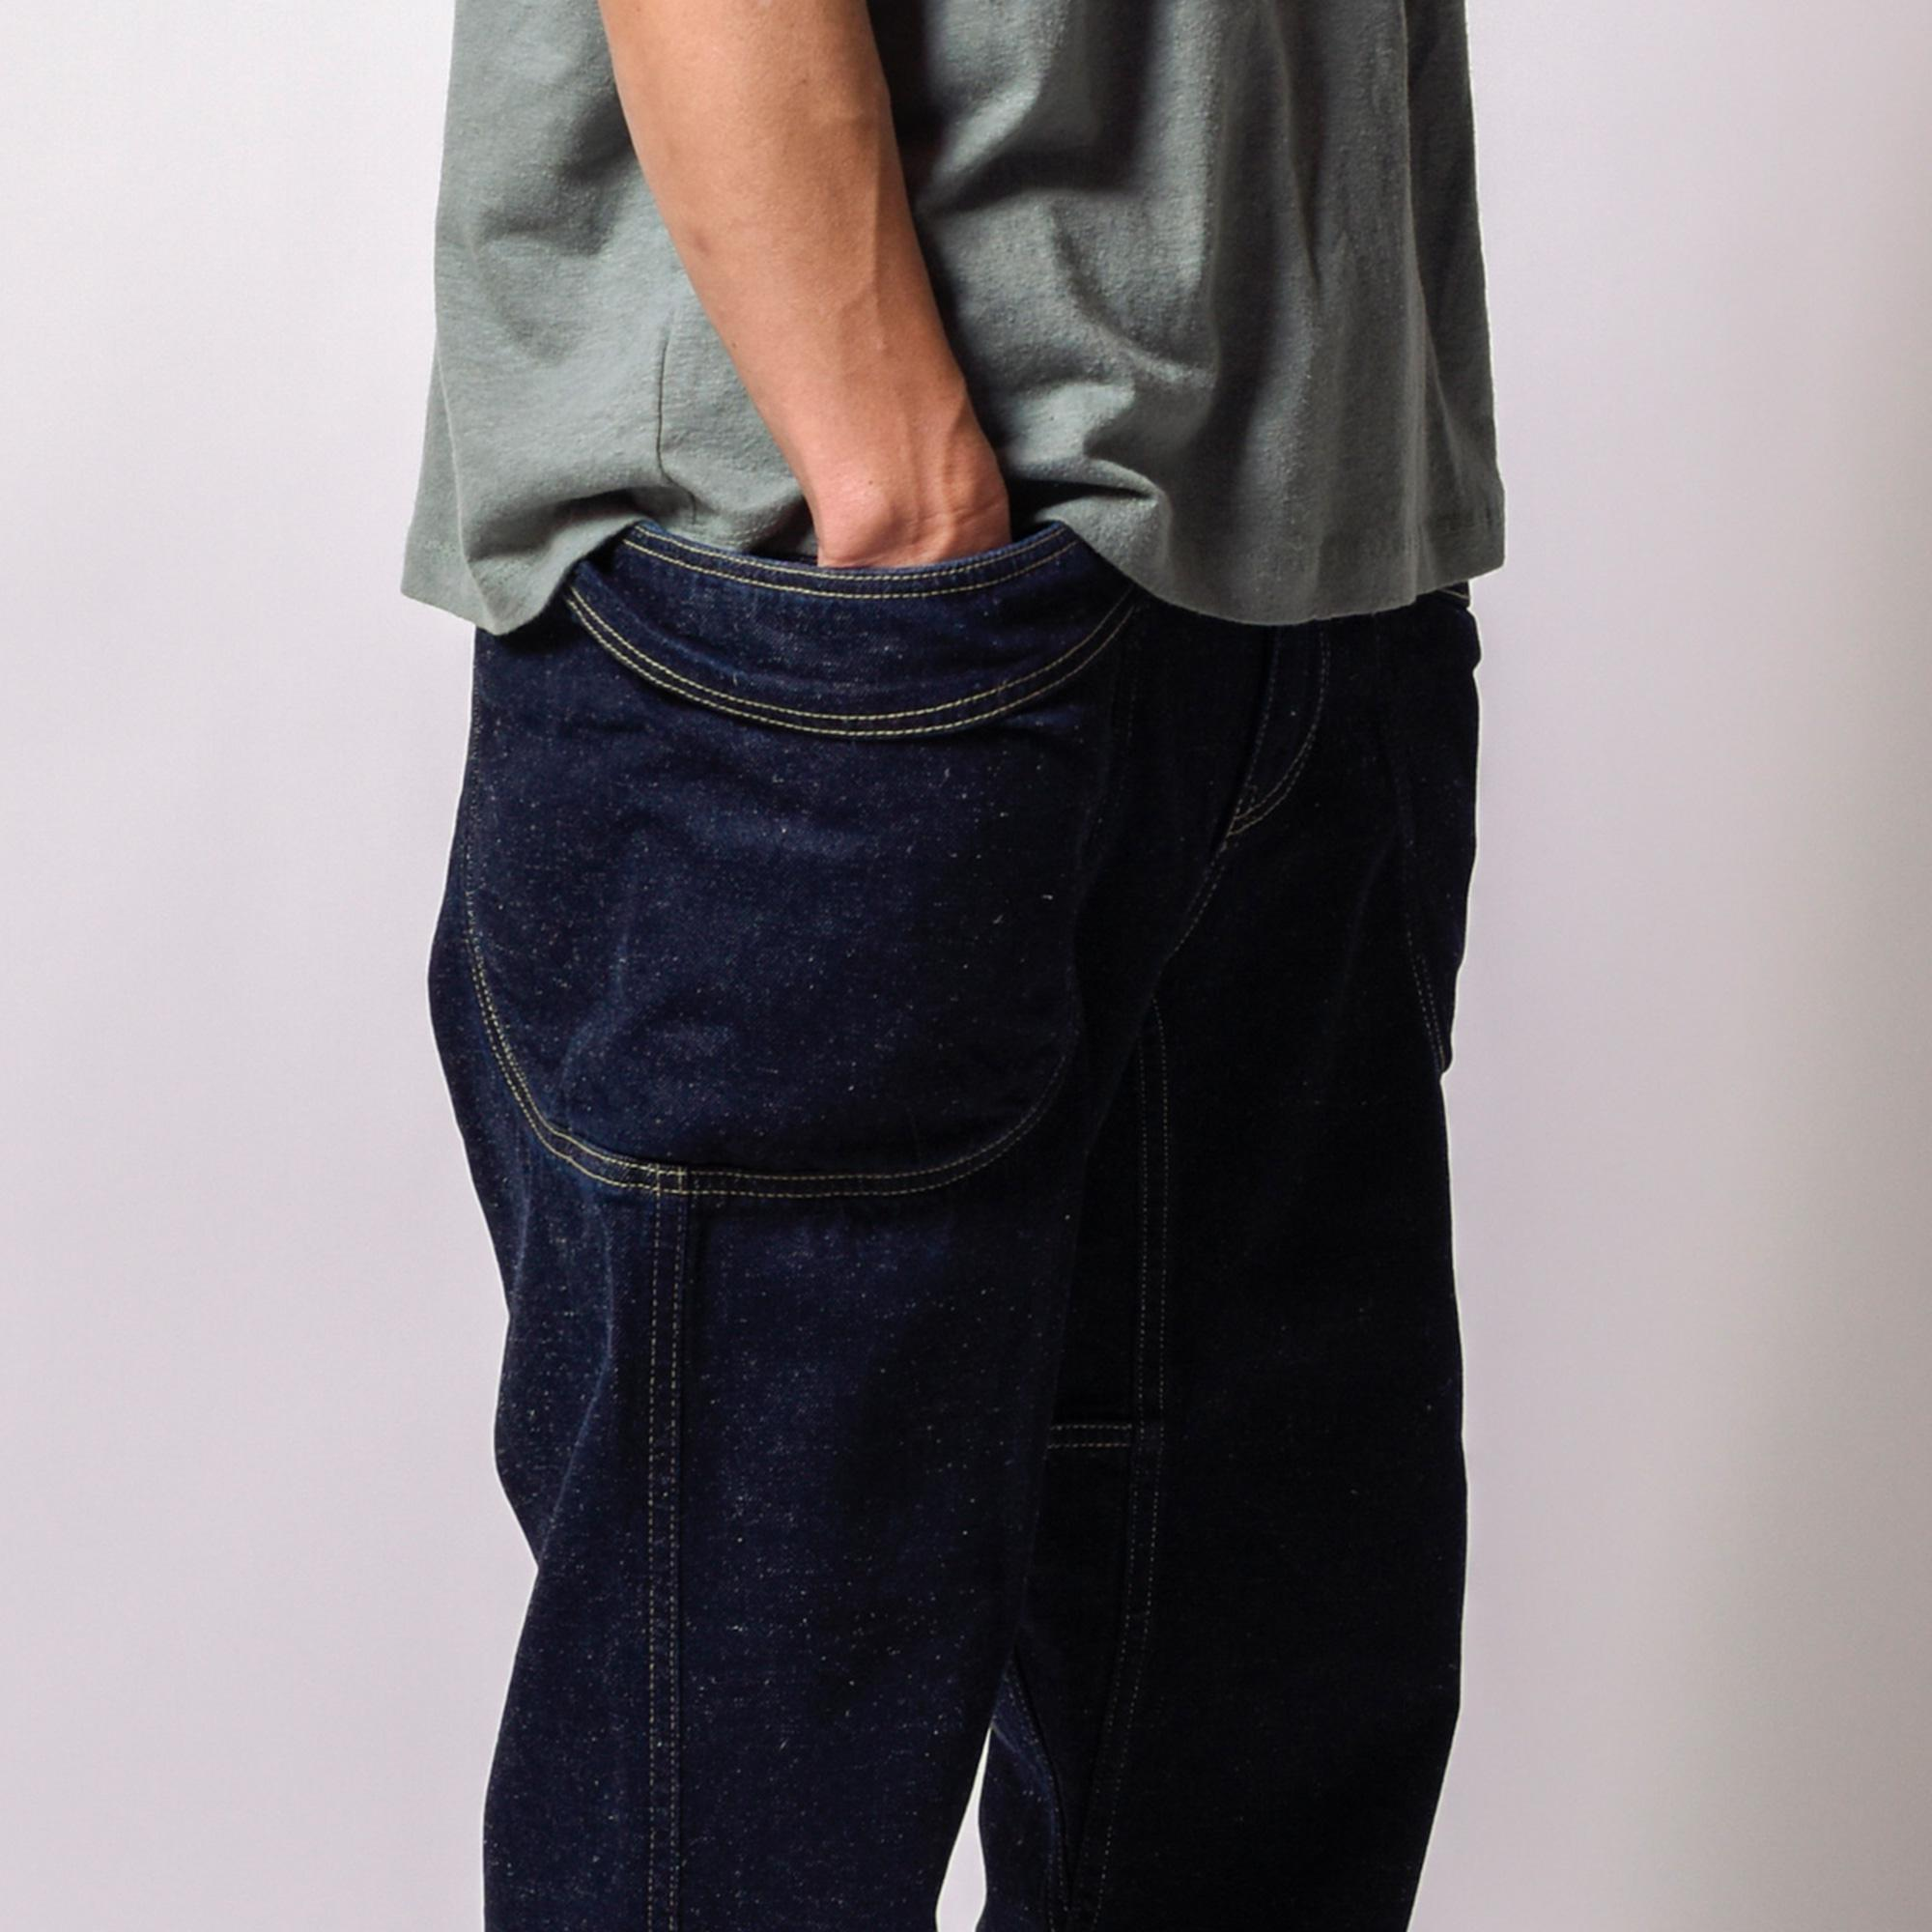 VENDOR ANKLE CUT PANTS/12ozH/C DENIM(ONE WASH)